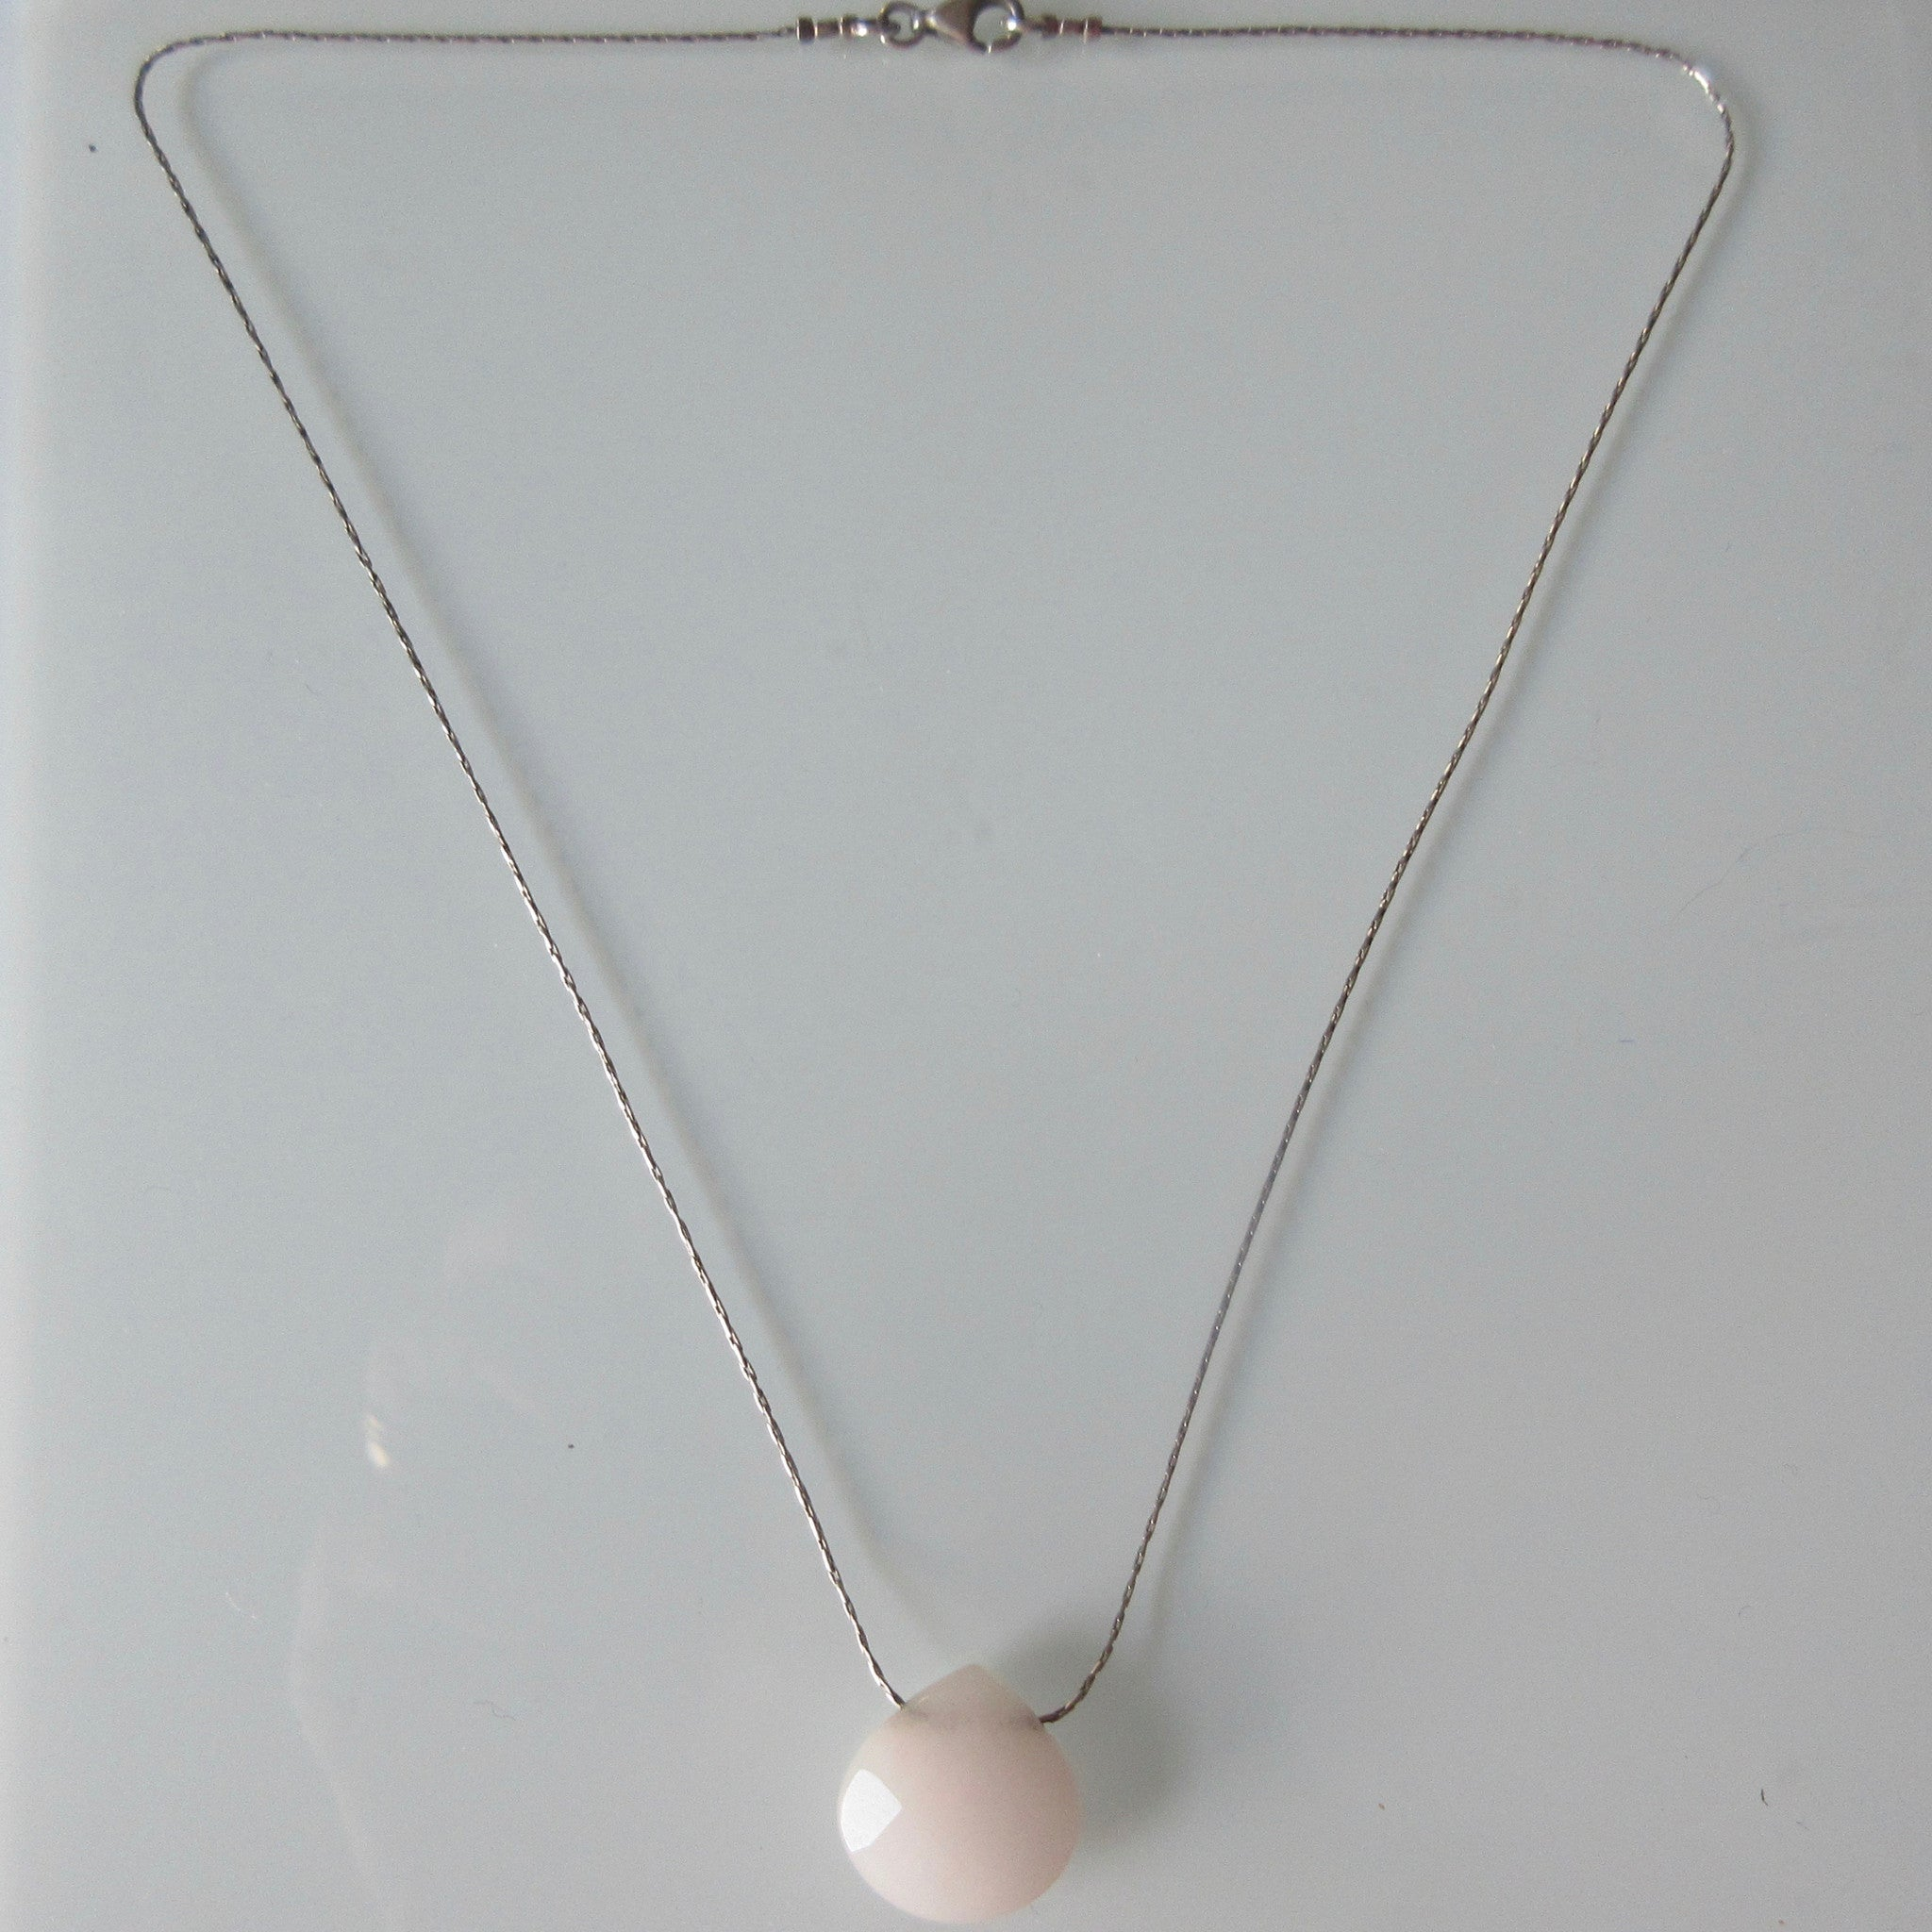 Pink Cut Crystal Tear Drop Pendant on Sterling Silver Chain